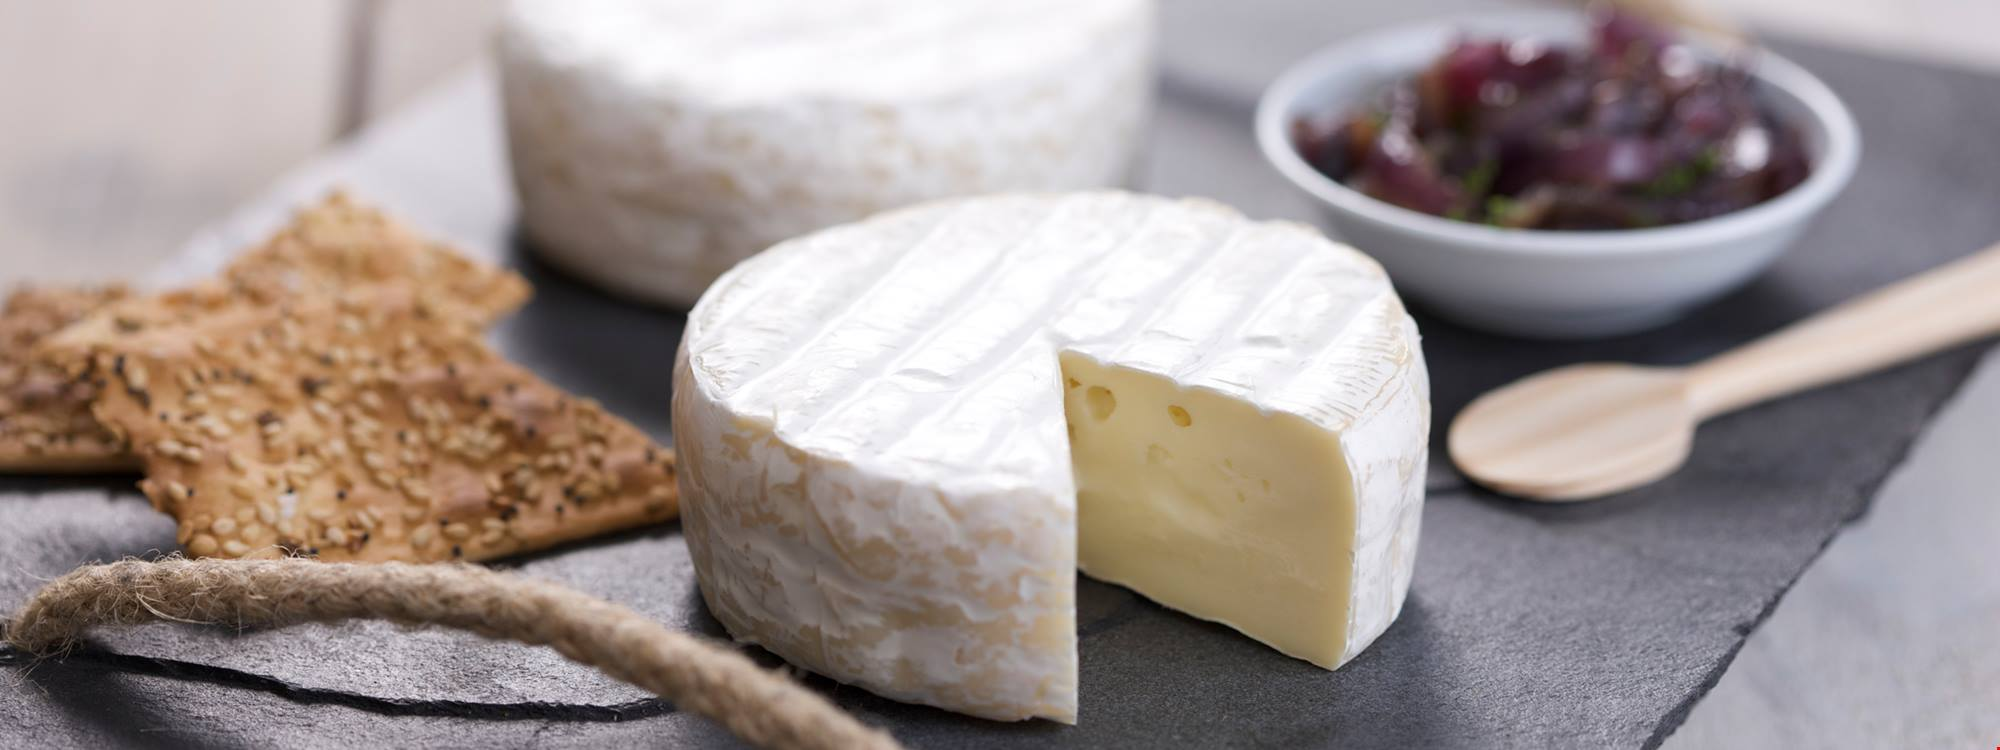 Low-fat cheese with delicious taste and a great look